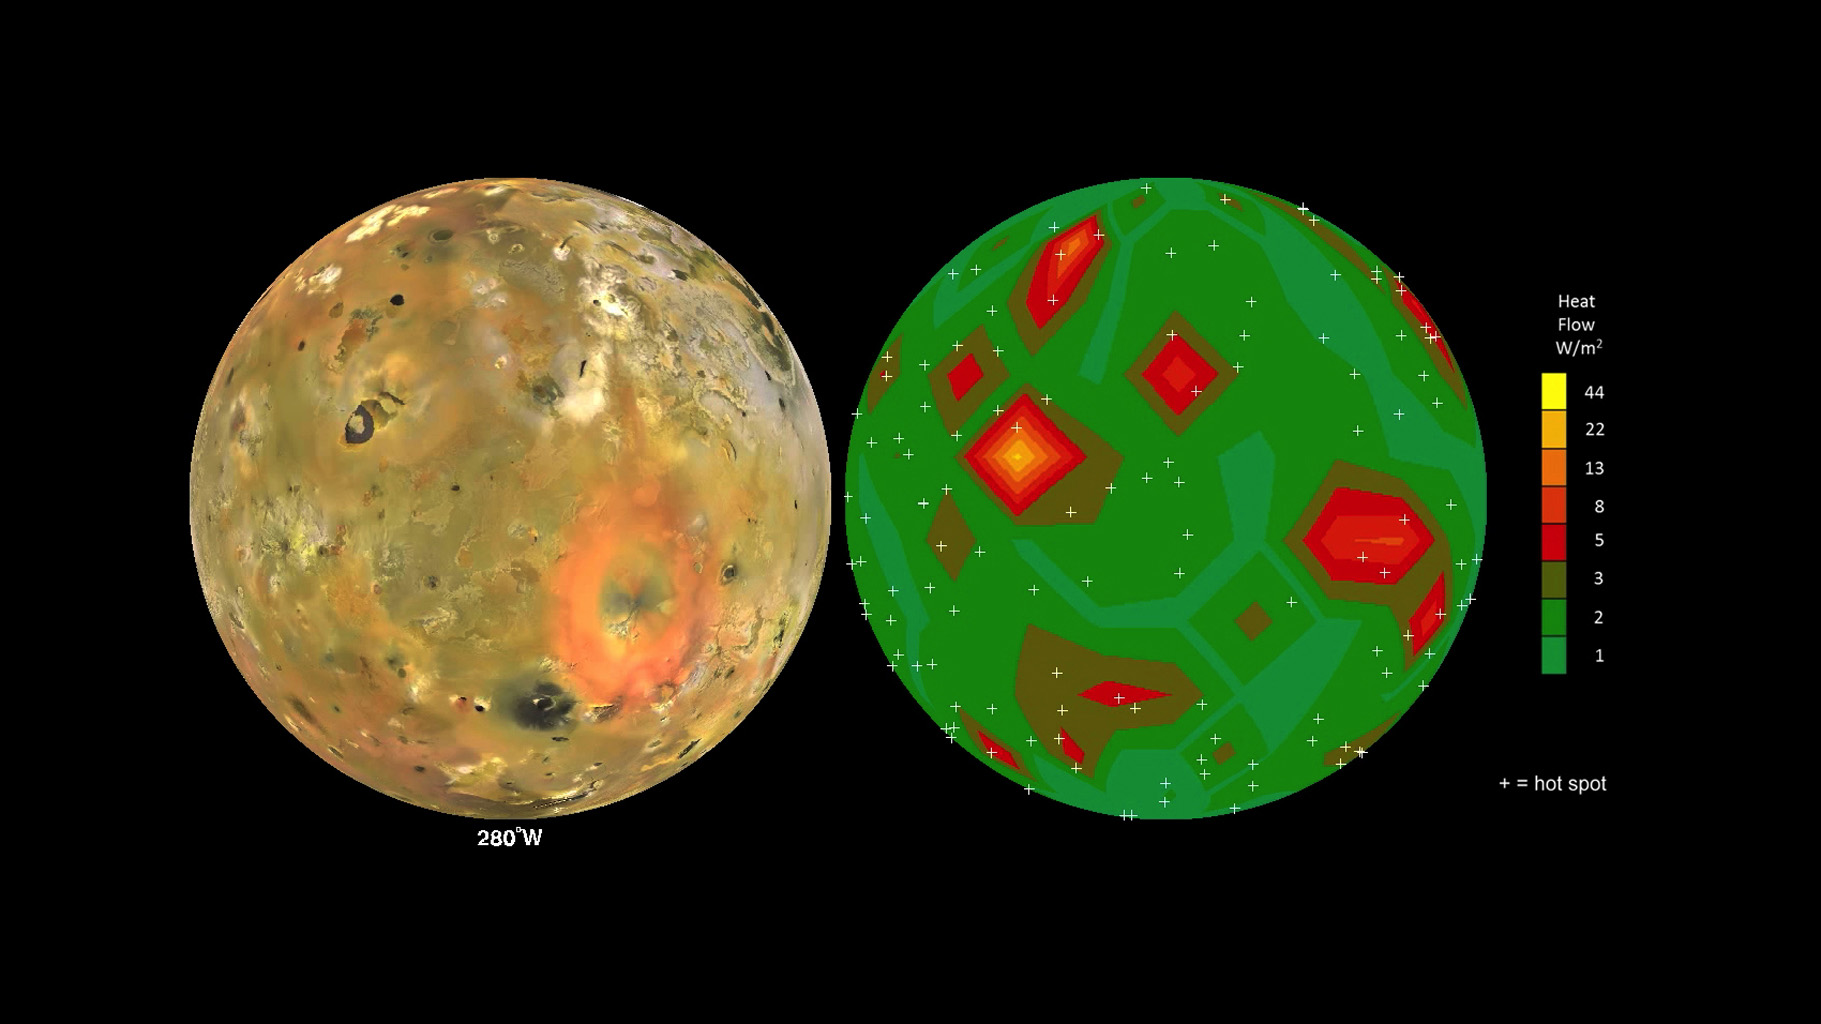 Space Images | Map of Io's Volcanic Heat Flow